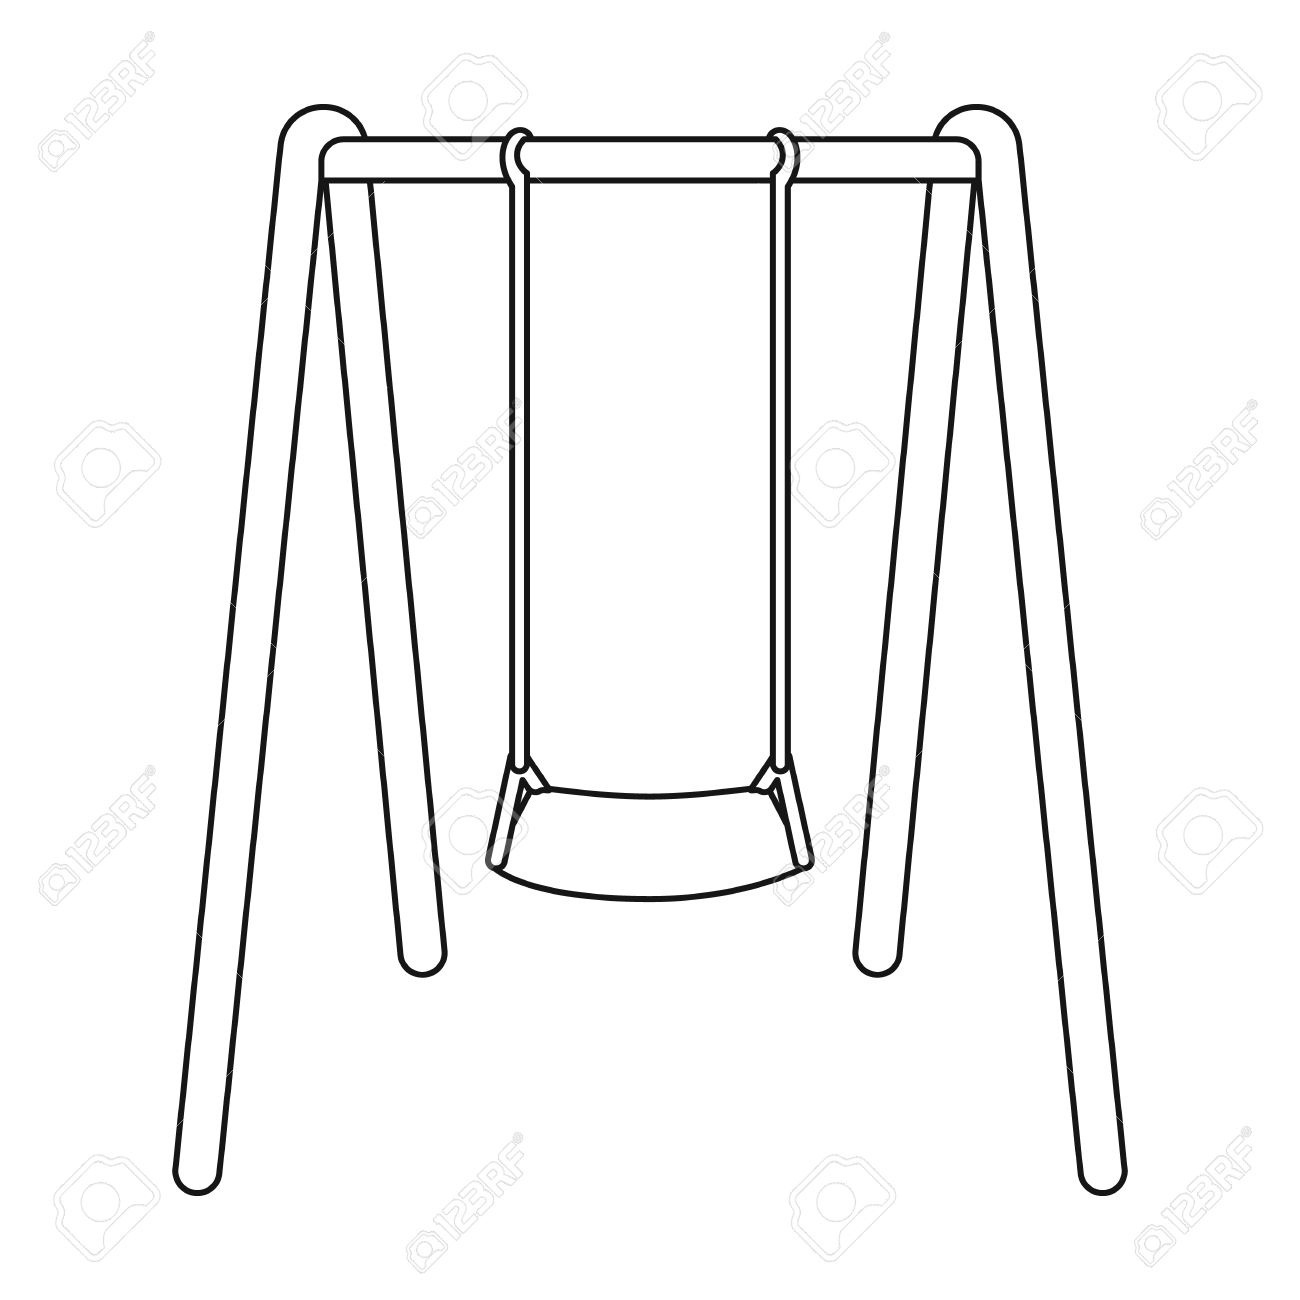 Black and white clipart swing vector freeuse Swing Clipart Black And White Hd | Letters inside Swing Clipart ... vector freeuse